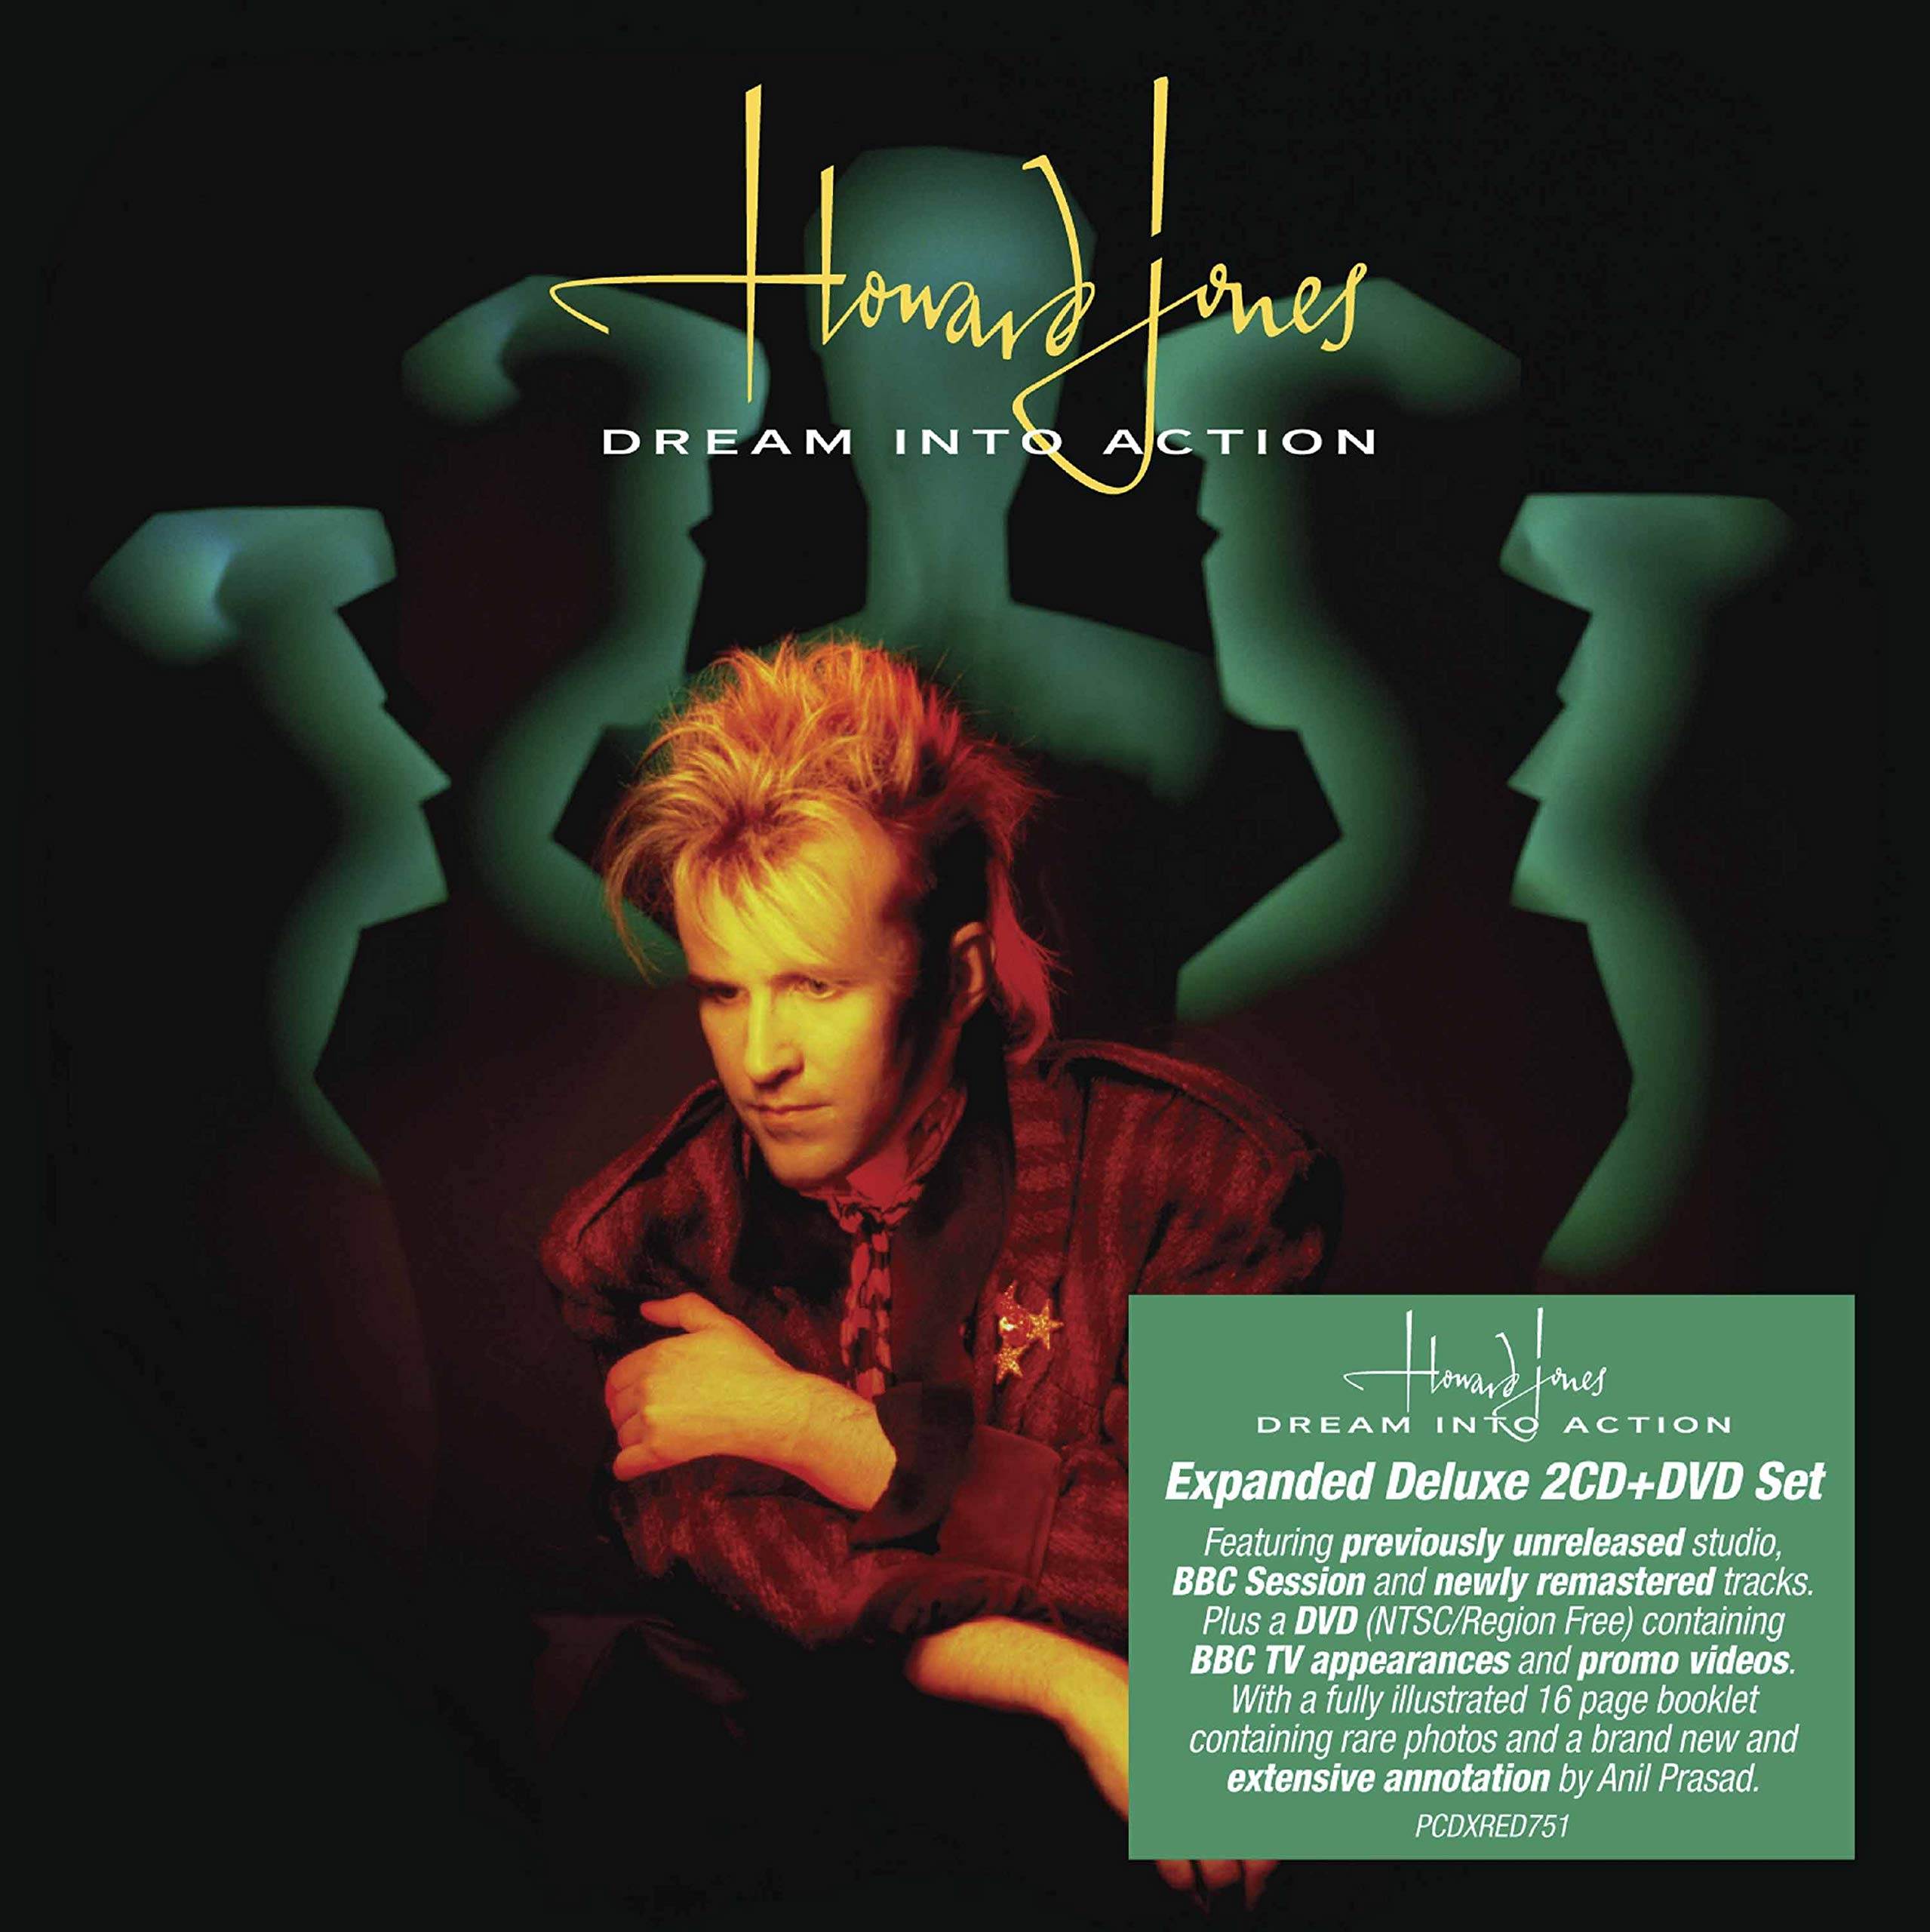 CD : Howard Jones - Dream Into Action (With DVD, Expanded Version, Deluxe Edition, Digipack Packaging, United Kingdom - Import)